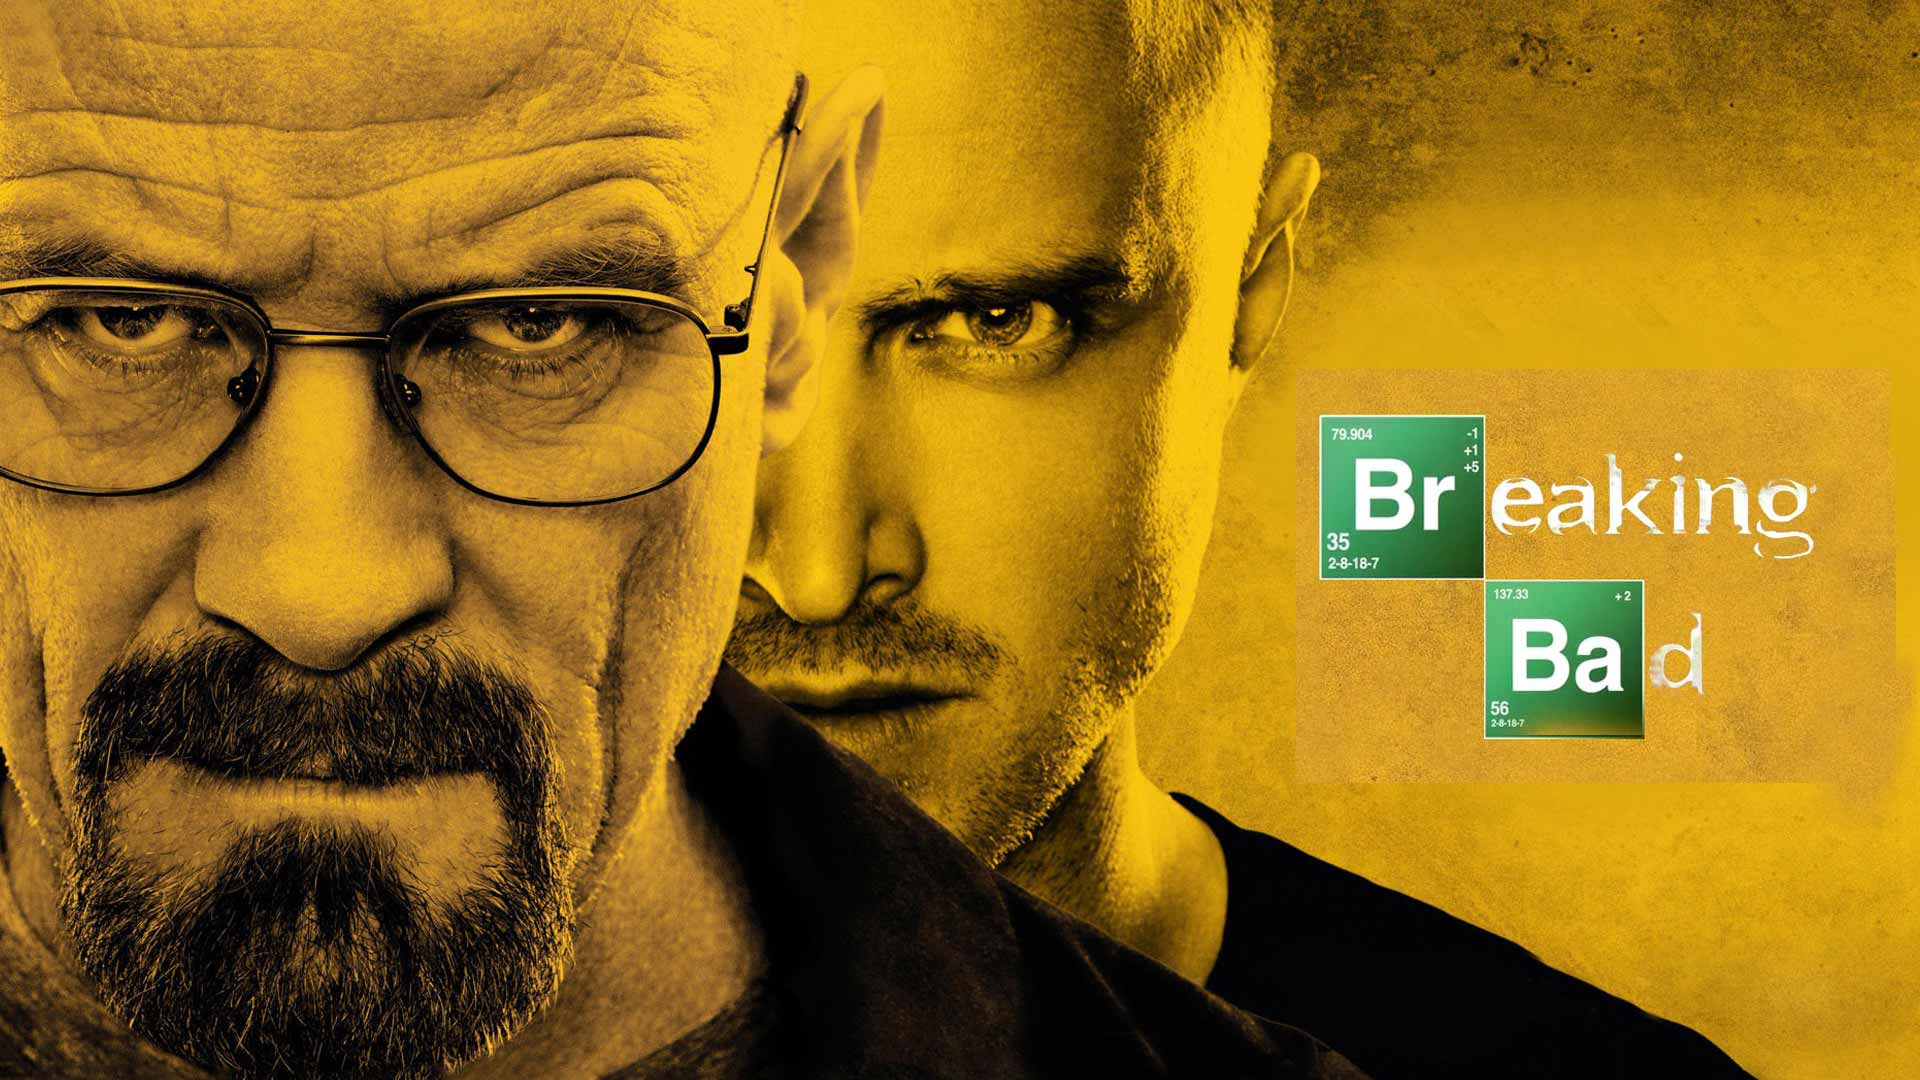 breaking bad konusu, kimya